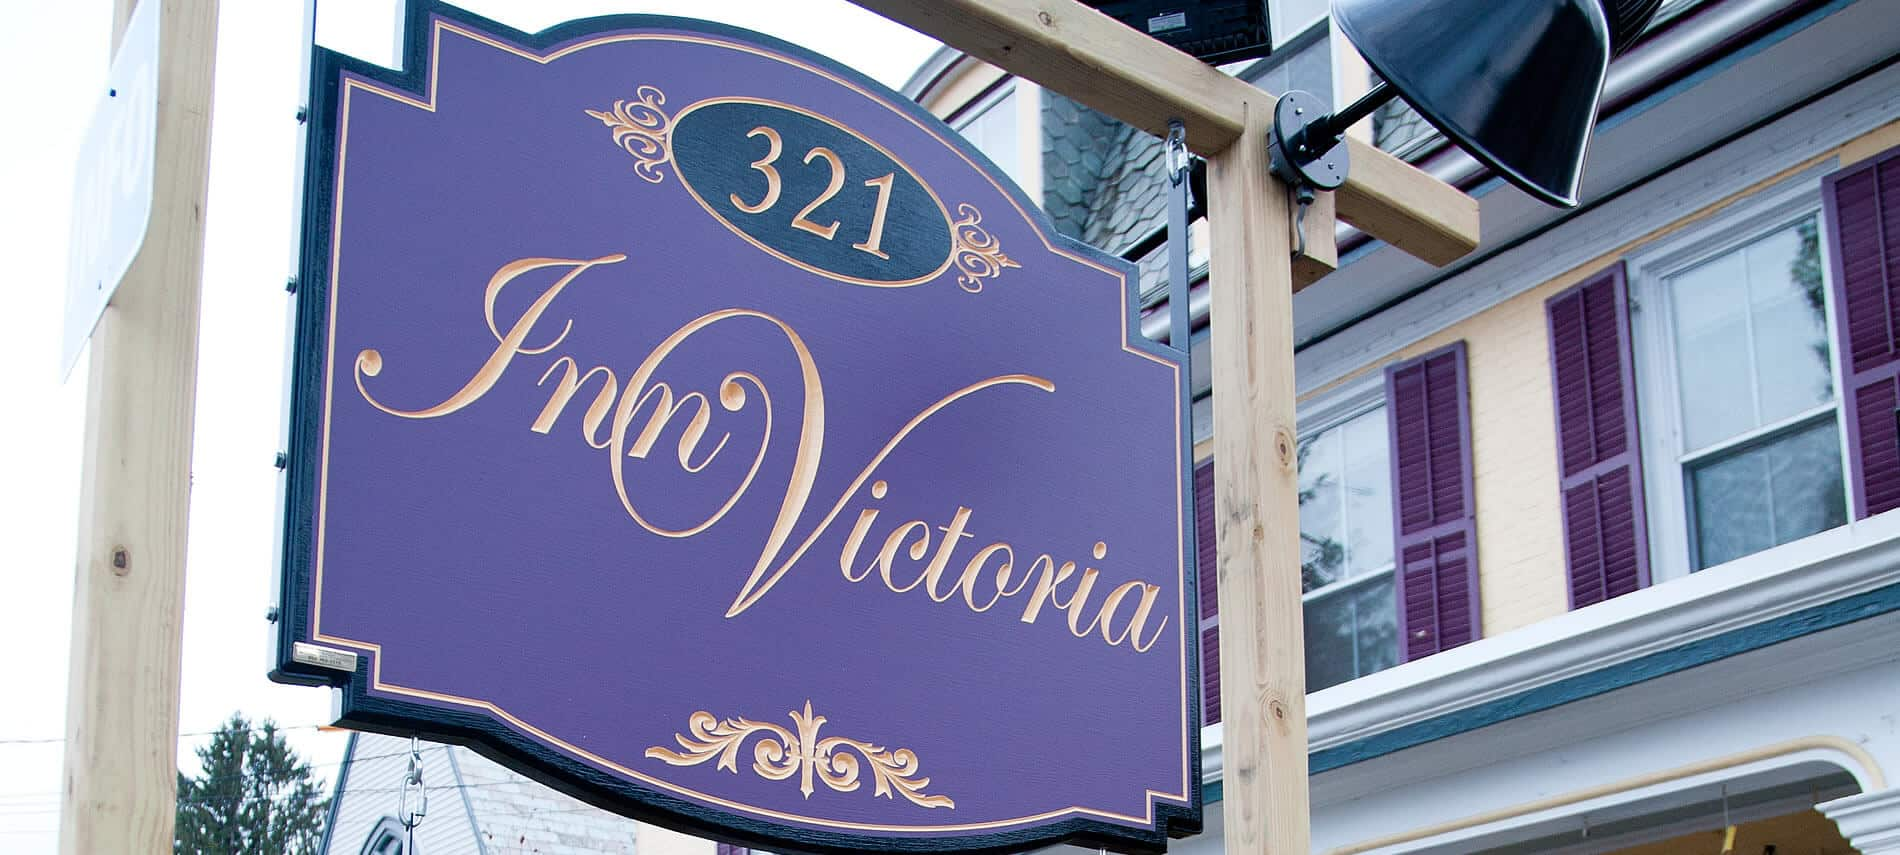 Exterior post and sign in front of the inn with 321 Inn Victoria engraved on a purple background